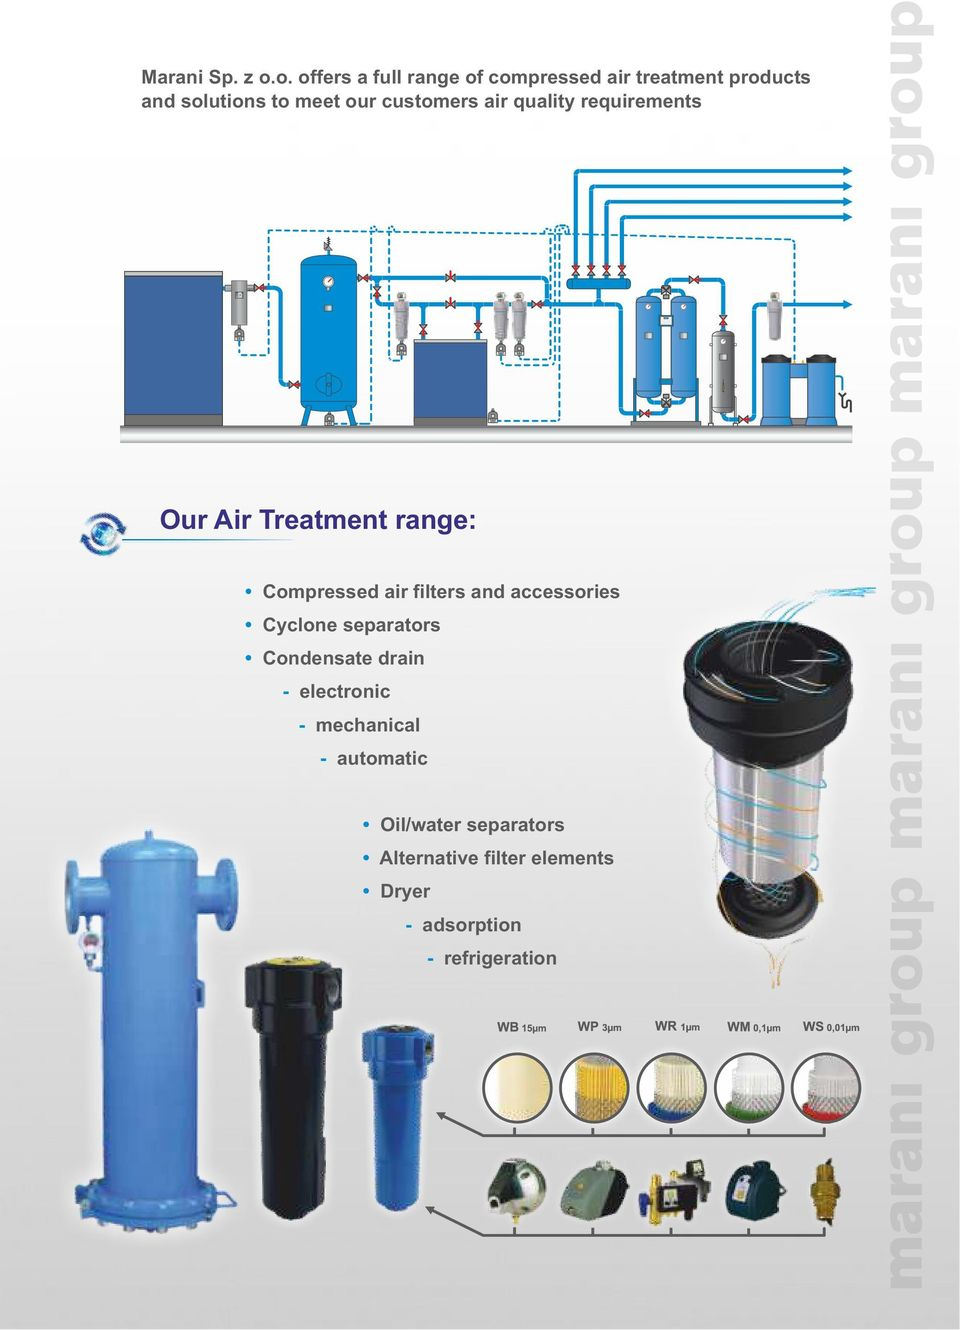 customers air quality requirements Our Air Treatment range: Compressed air filters and